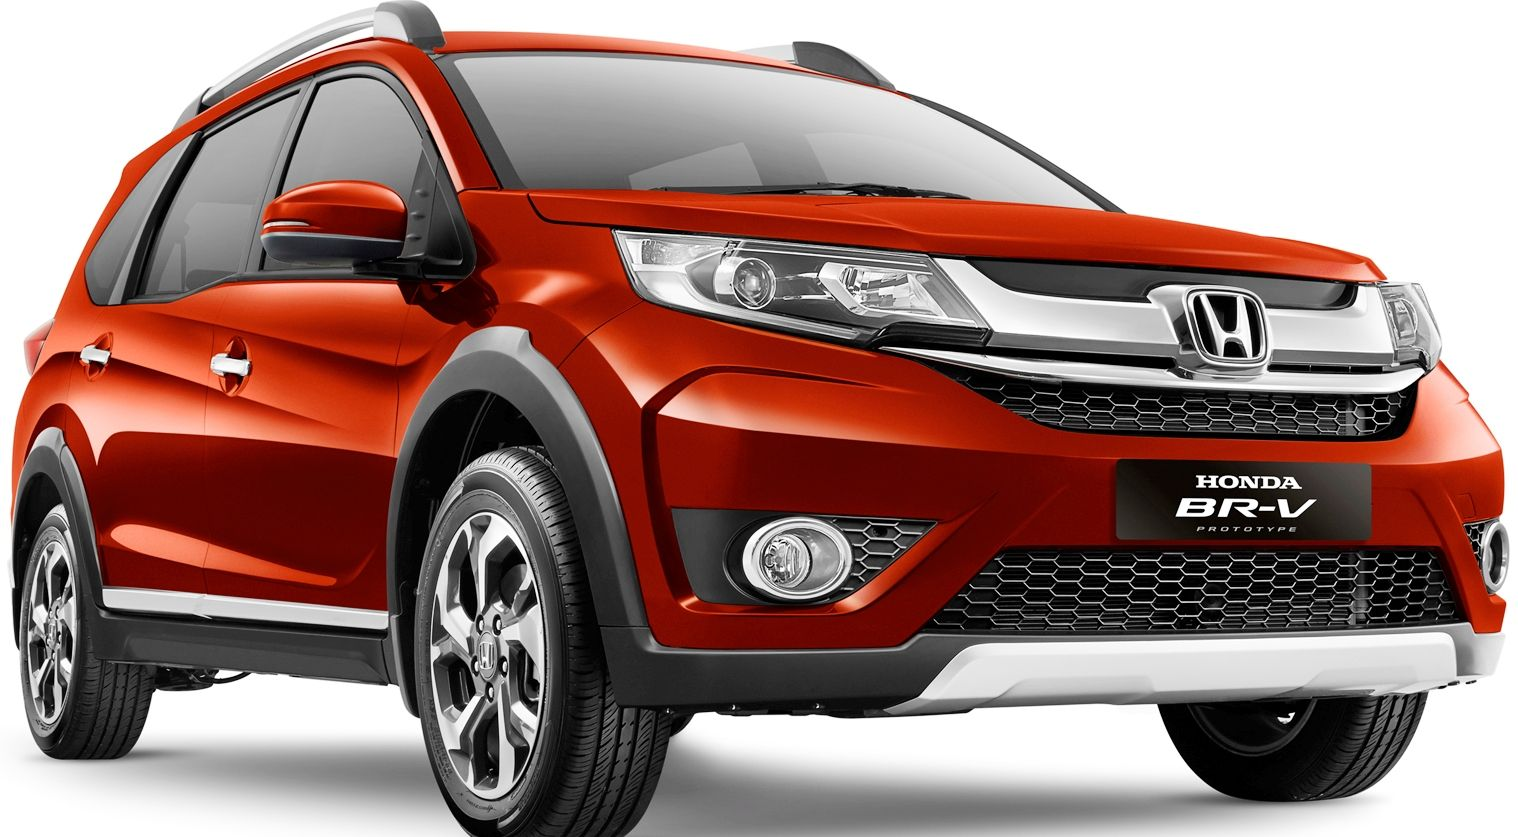 Honda's new BRV and Accord to be unveiled at the 2016